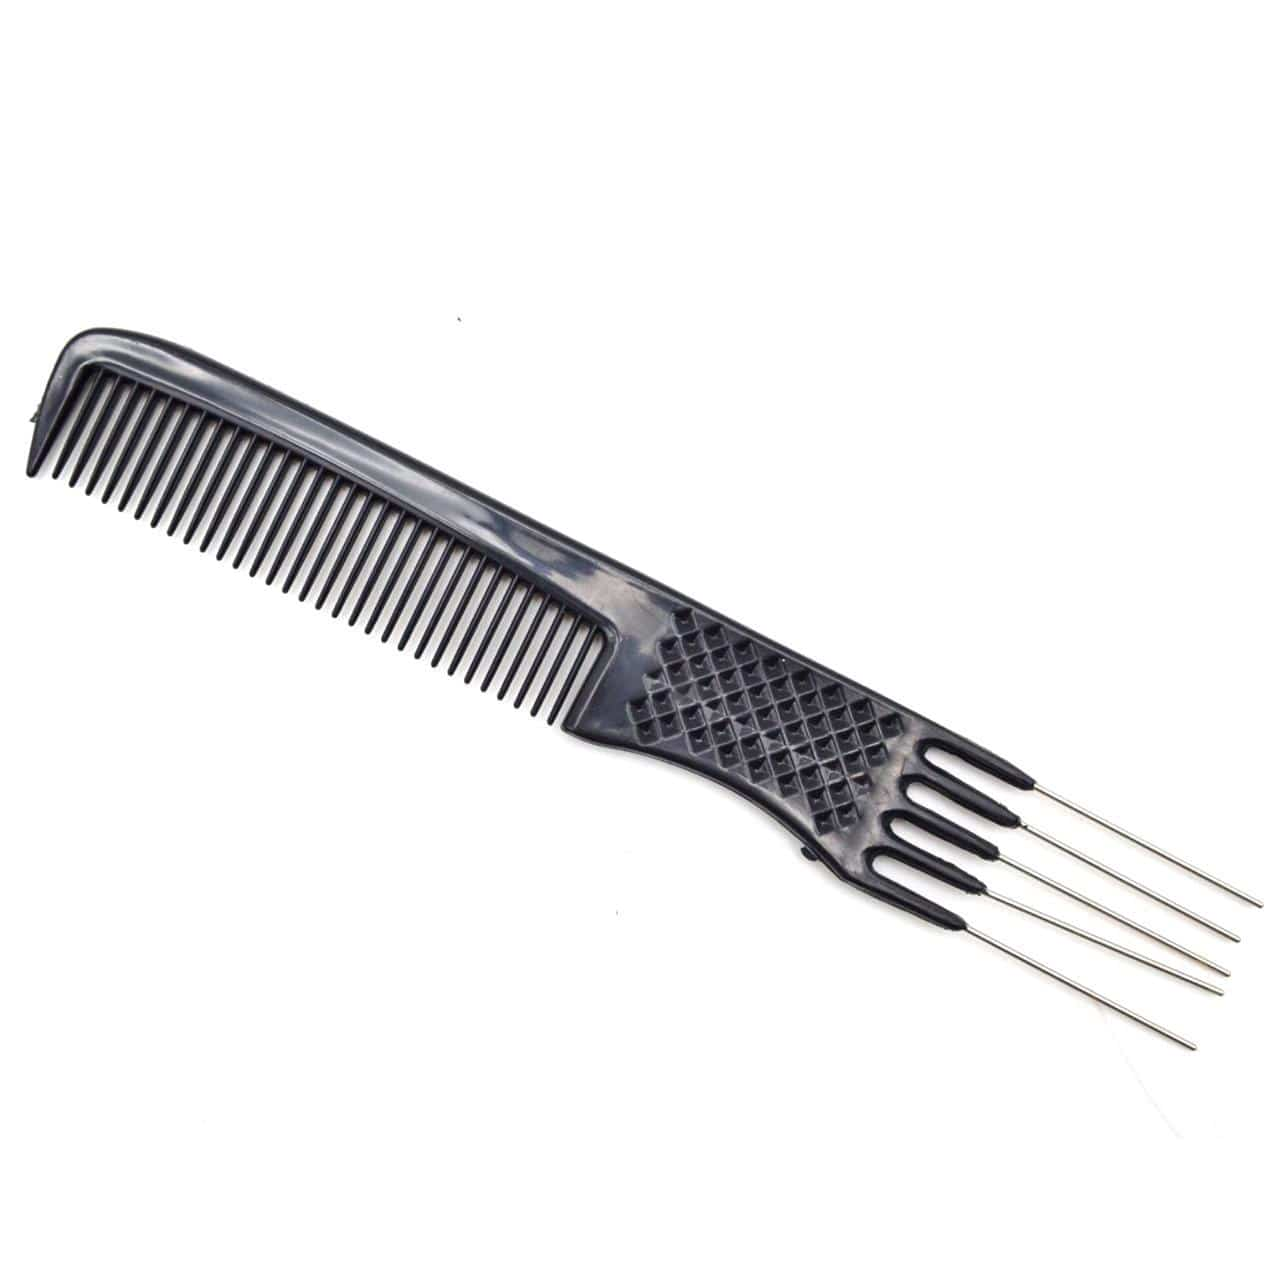 Globalstar Hair Styling Comb ABS-77839